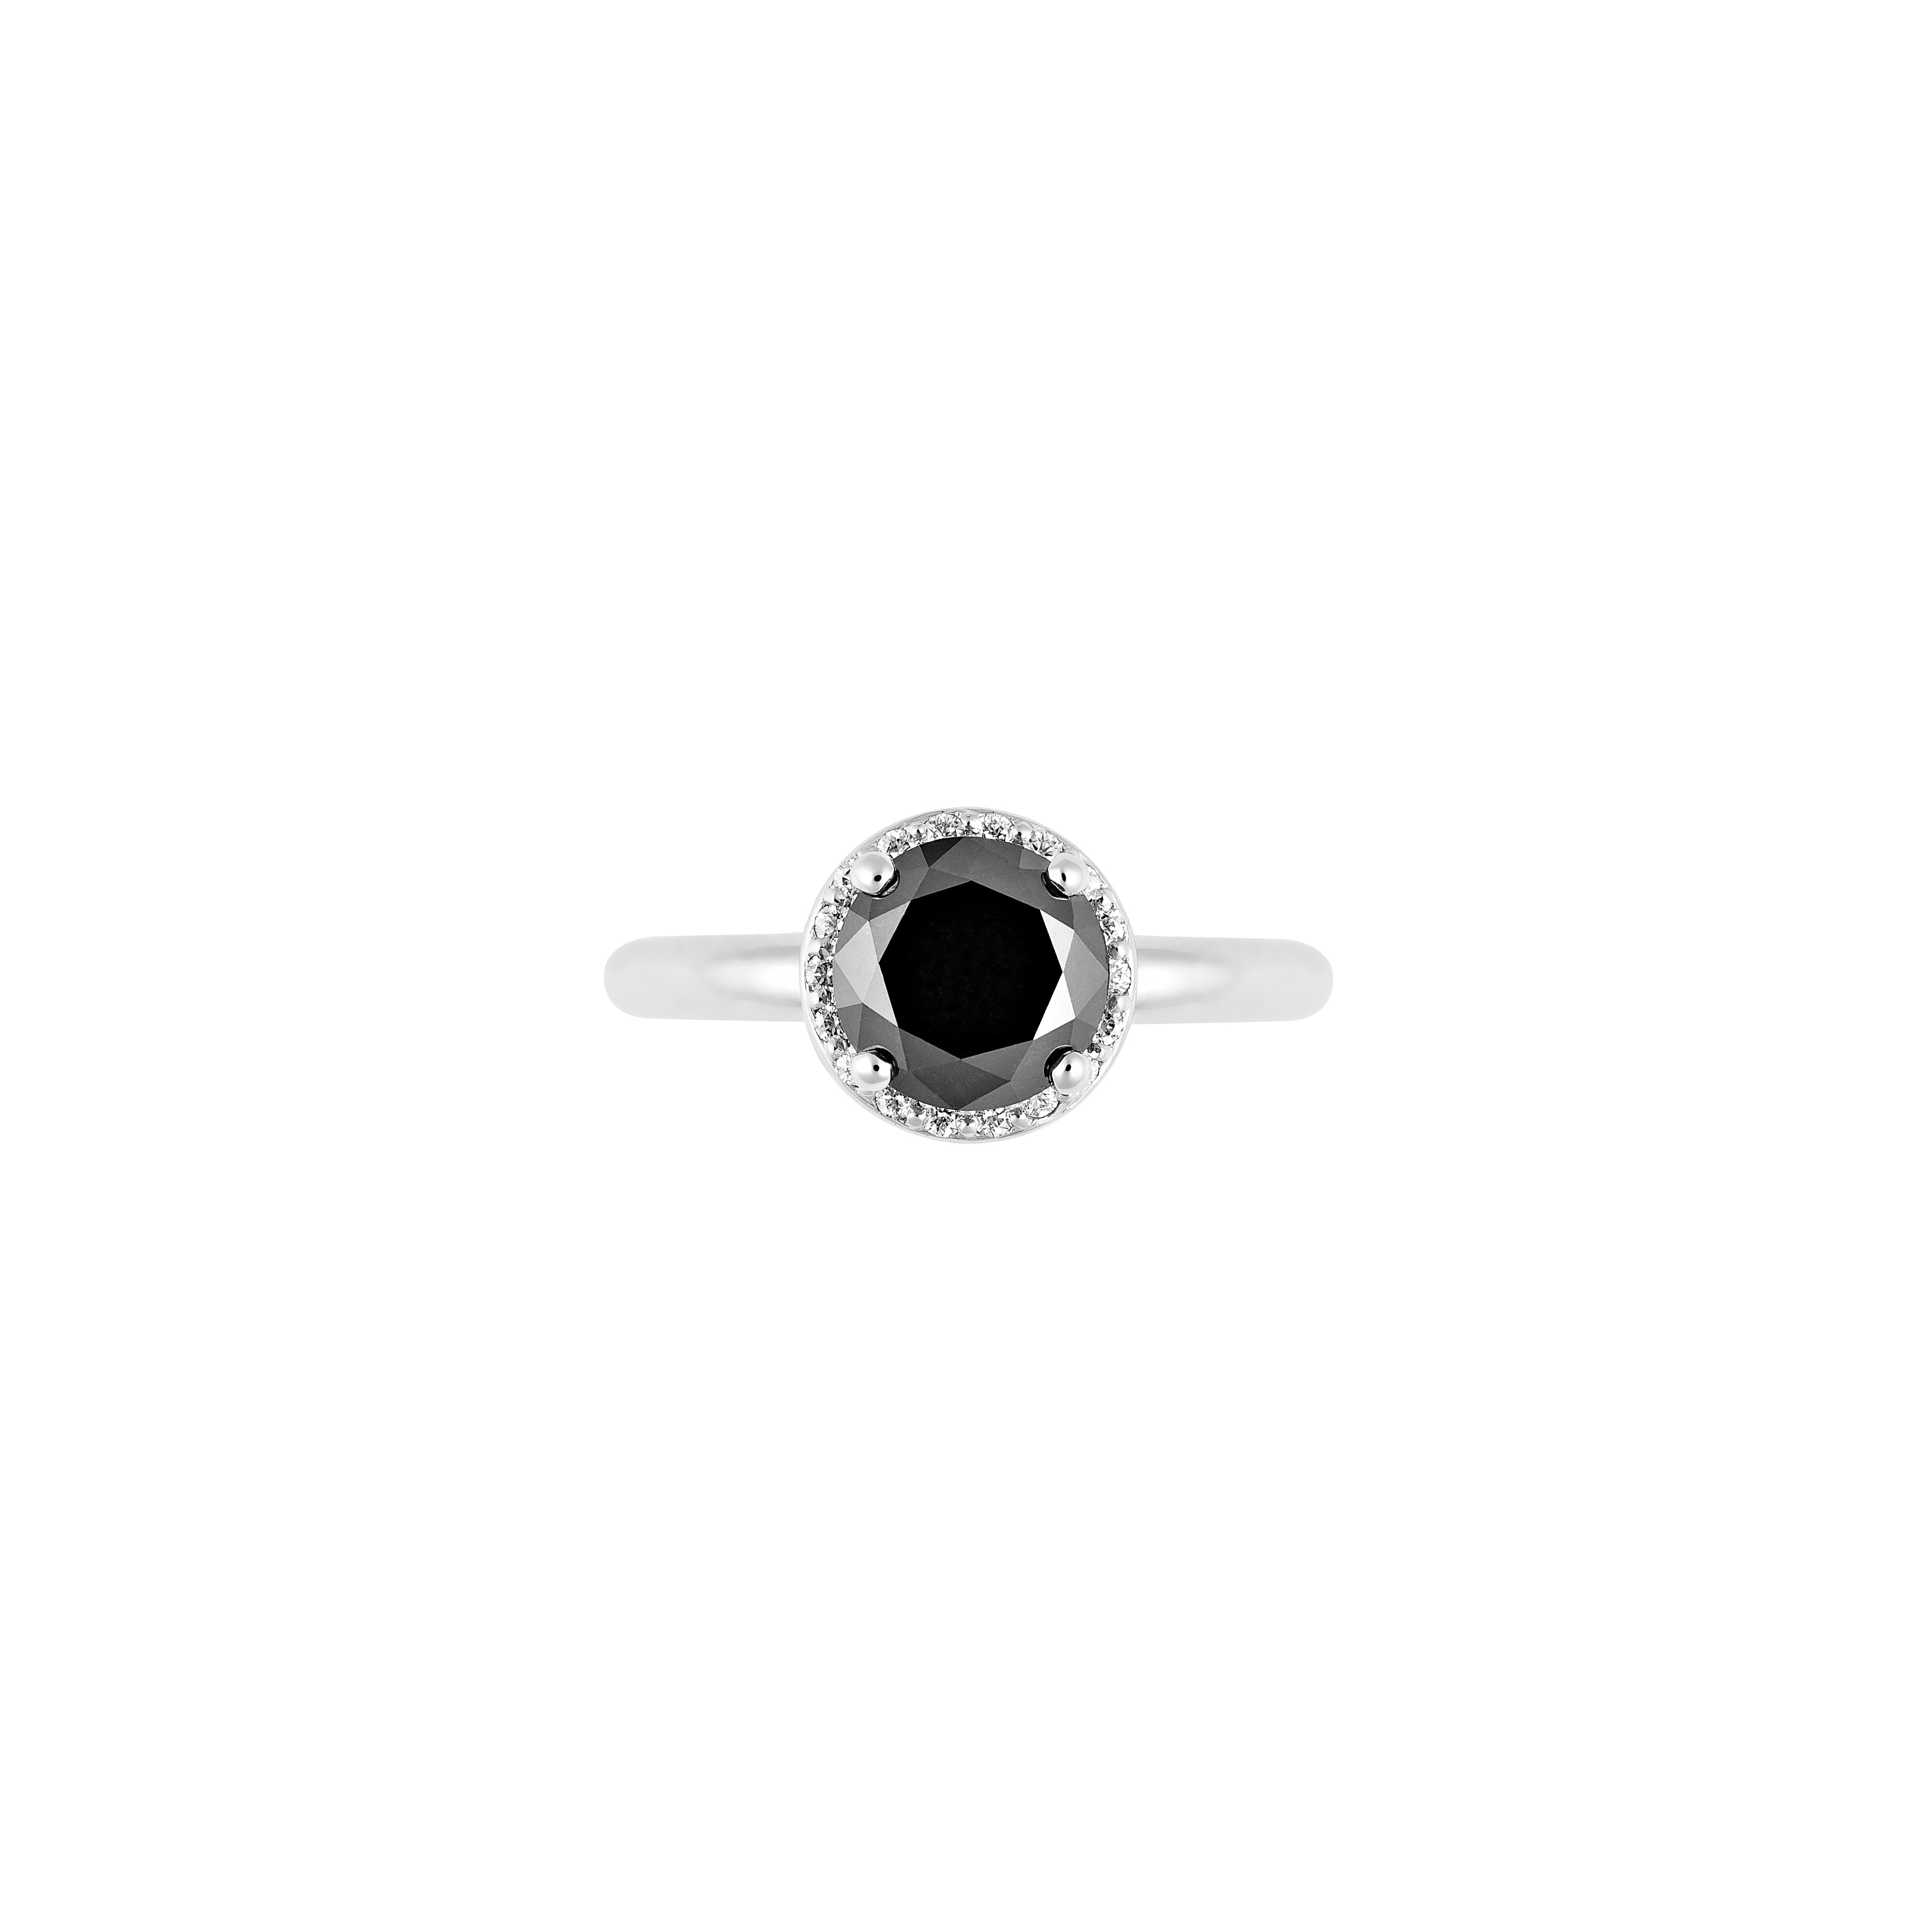 black diamond engagement ring(top view)